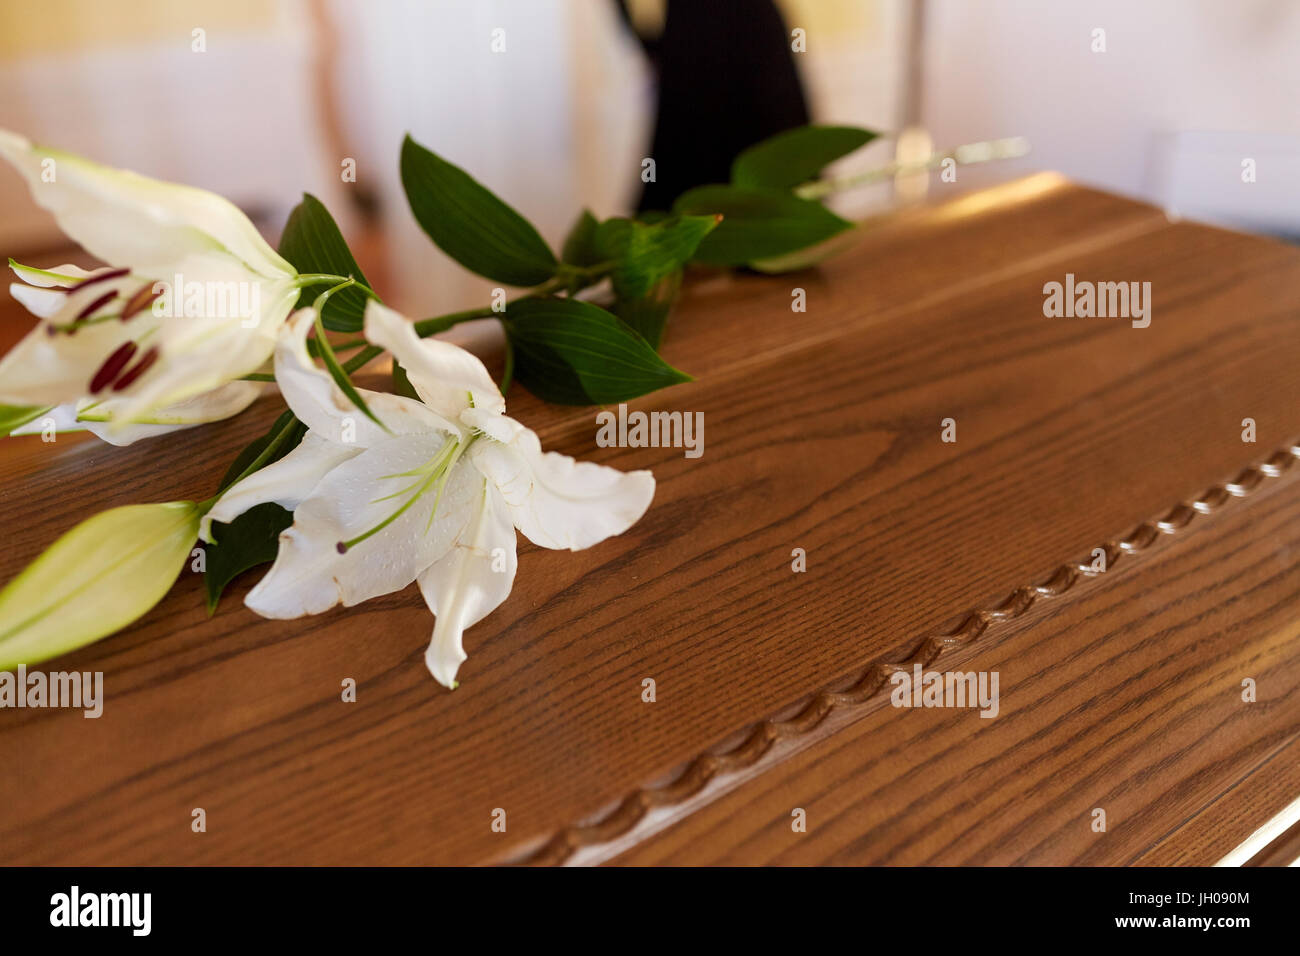 White lily death stock photos white lily death stock images page lily flower on wooden coffin at funeral in church stock image izmirmasajfo